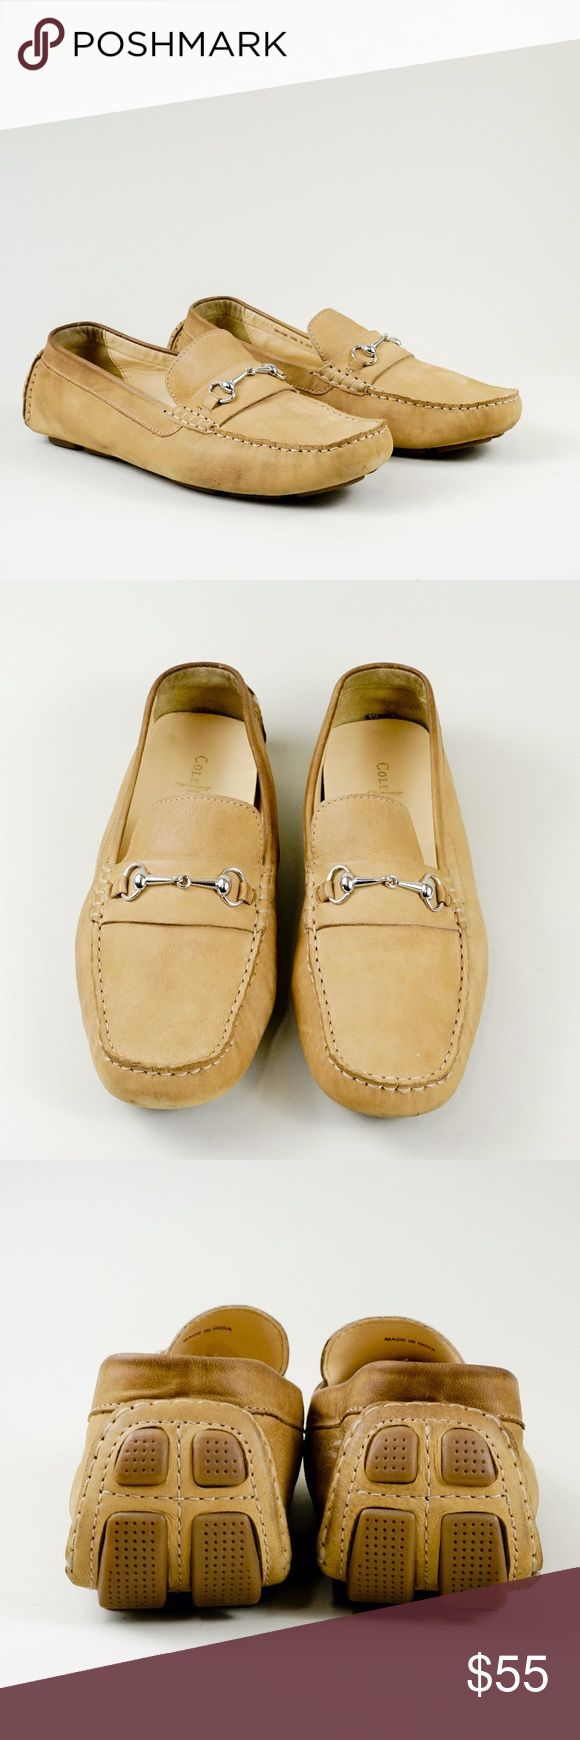 Cole Haan women  horsebit drivers size 10 They are in great condition. Gently worn with light signs of wear. The photos are taken from multiple angles, also include addition details of the condition.  Let me know if you have any questions.  Size: 10 B Color : Tan Cole Haan Shoes Flats & Loafers